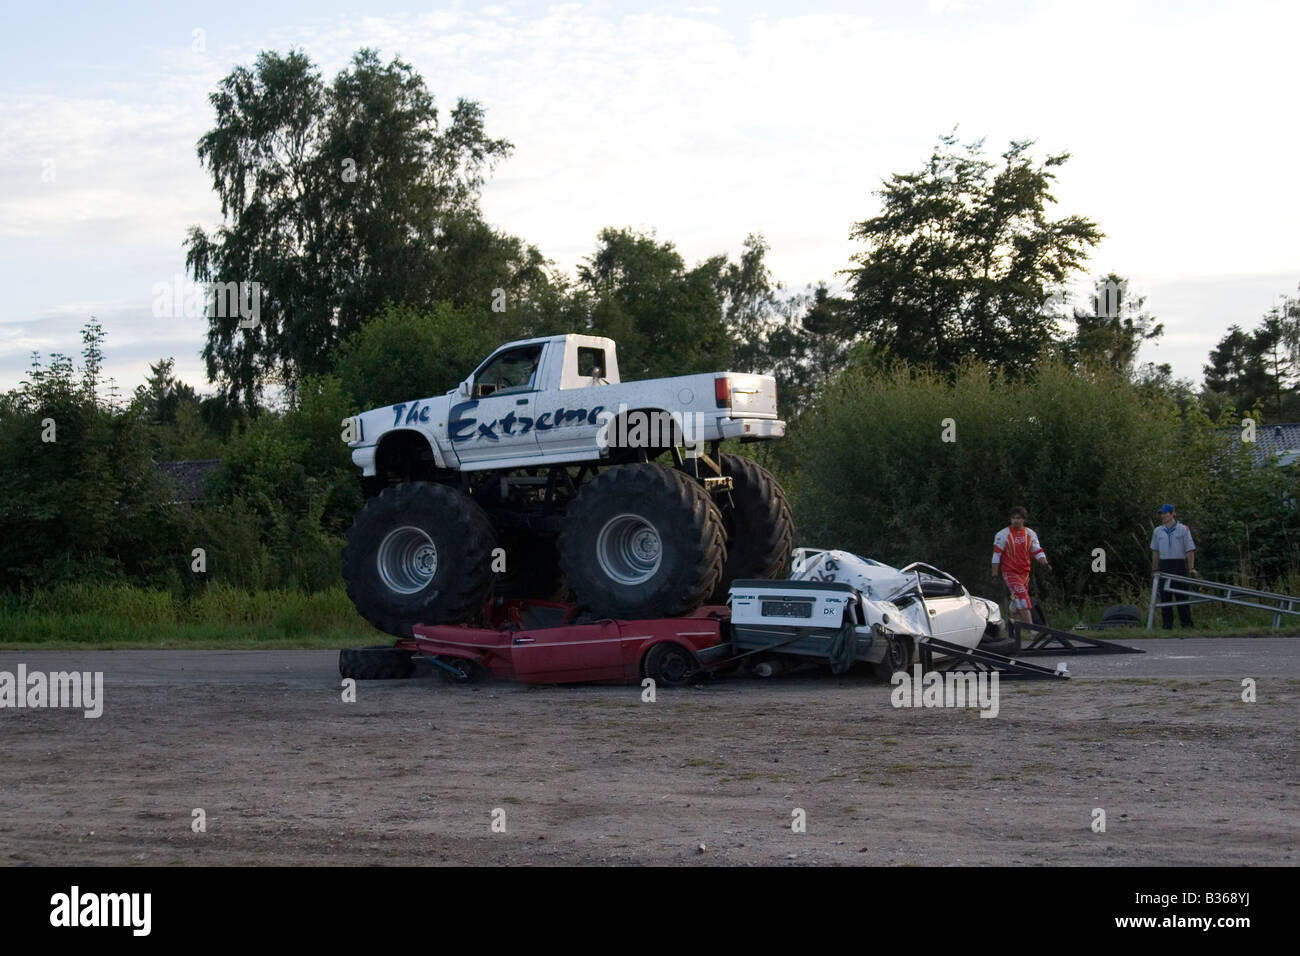 Extreme Monster Truck Crushing Cars Stock Photo Royalty Free